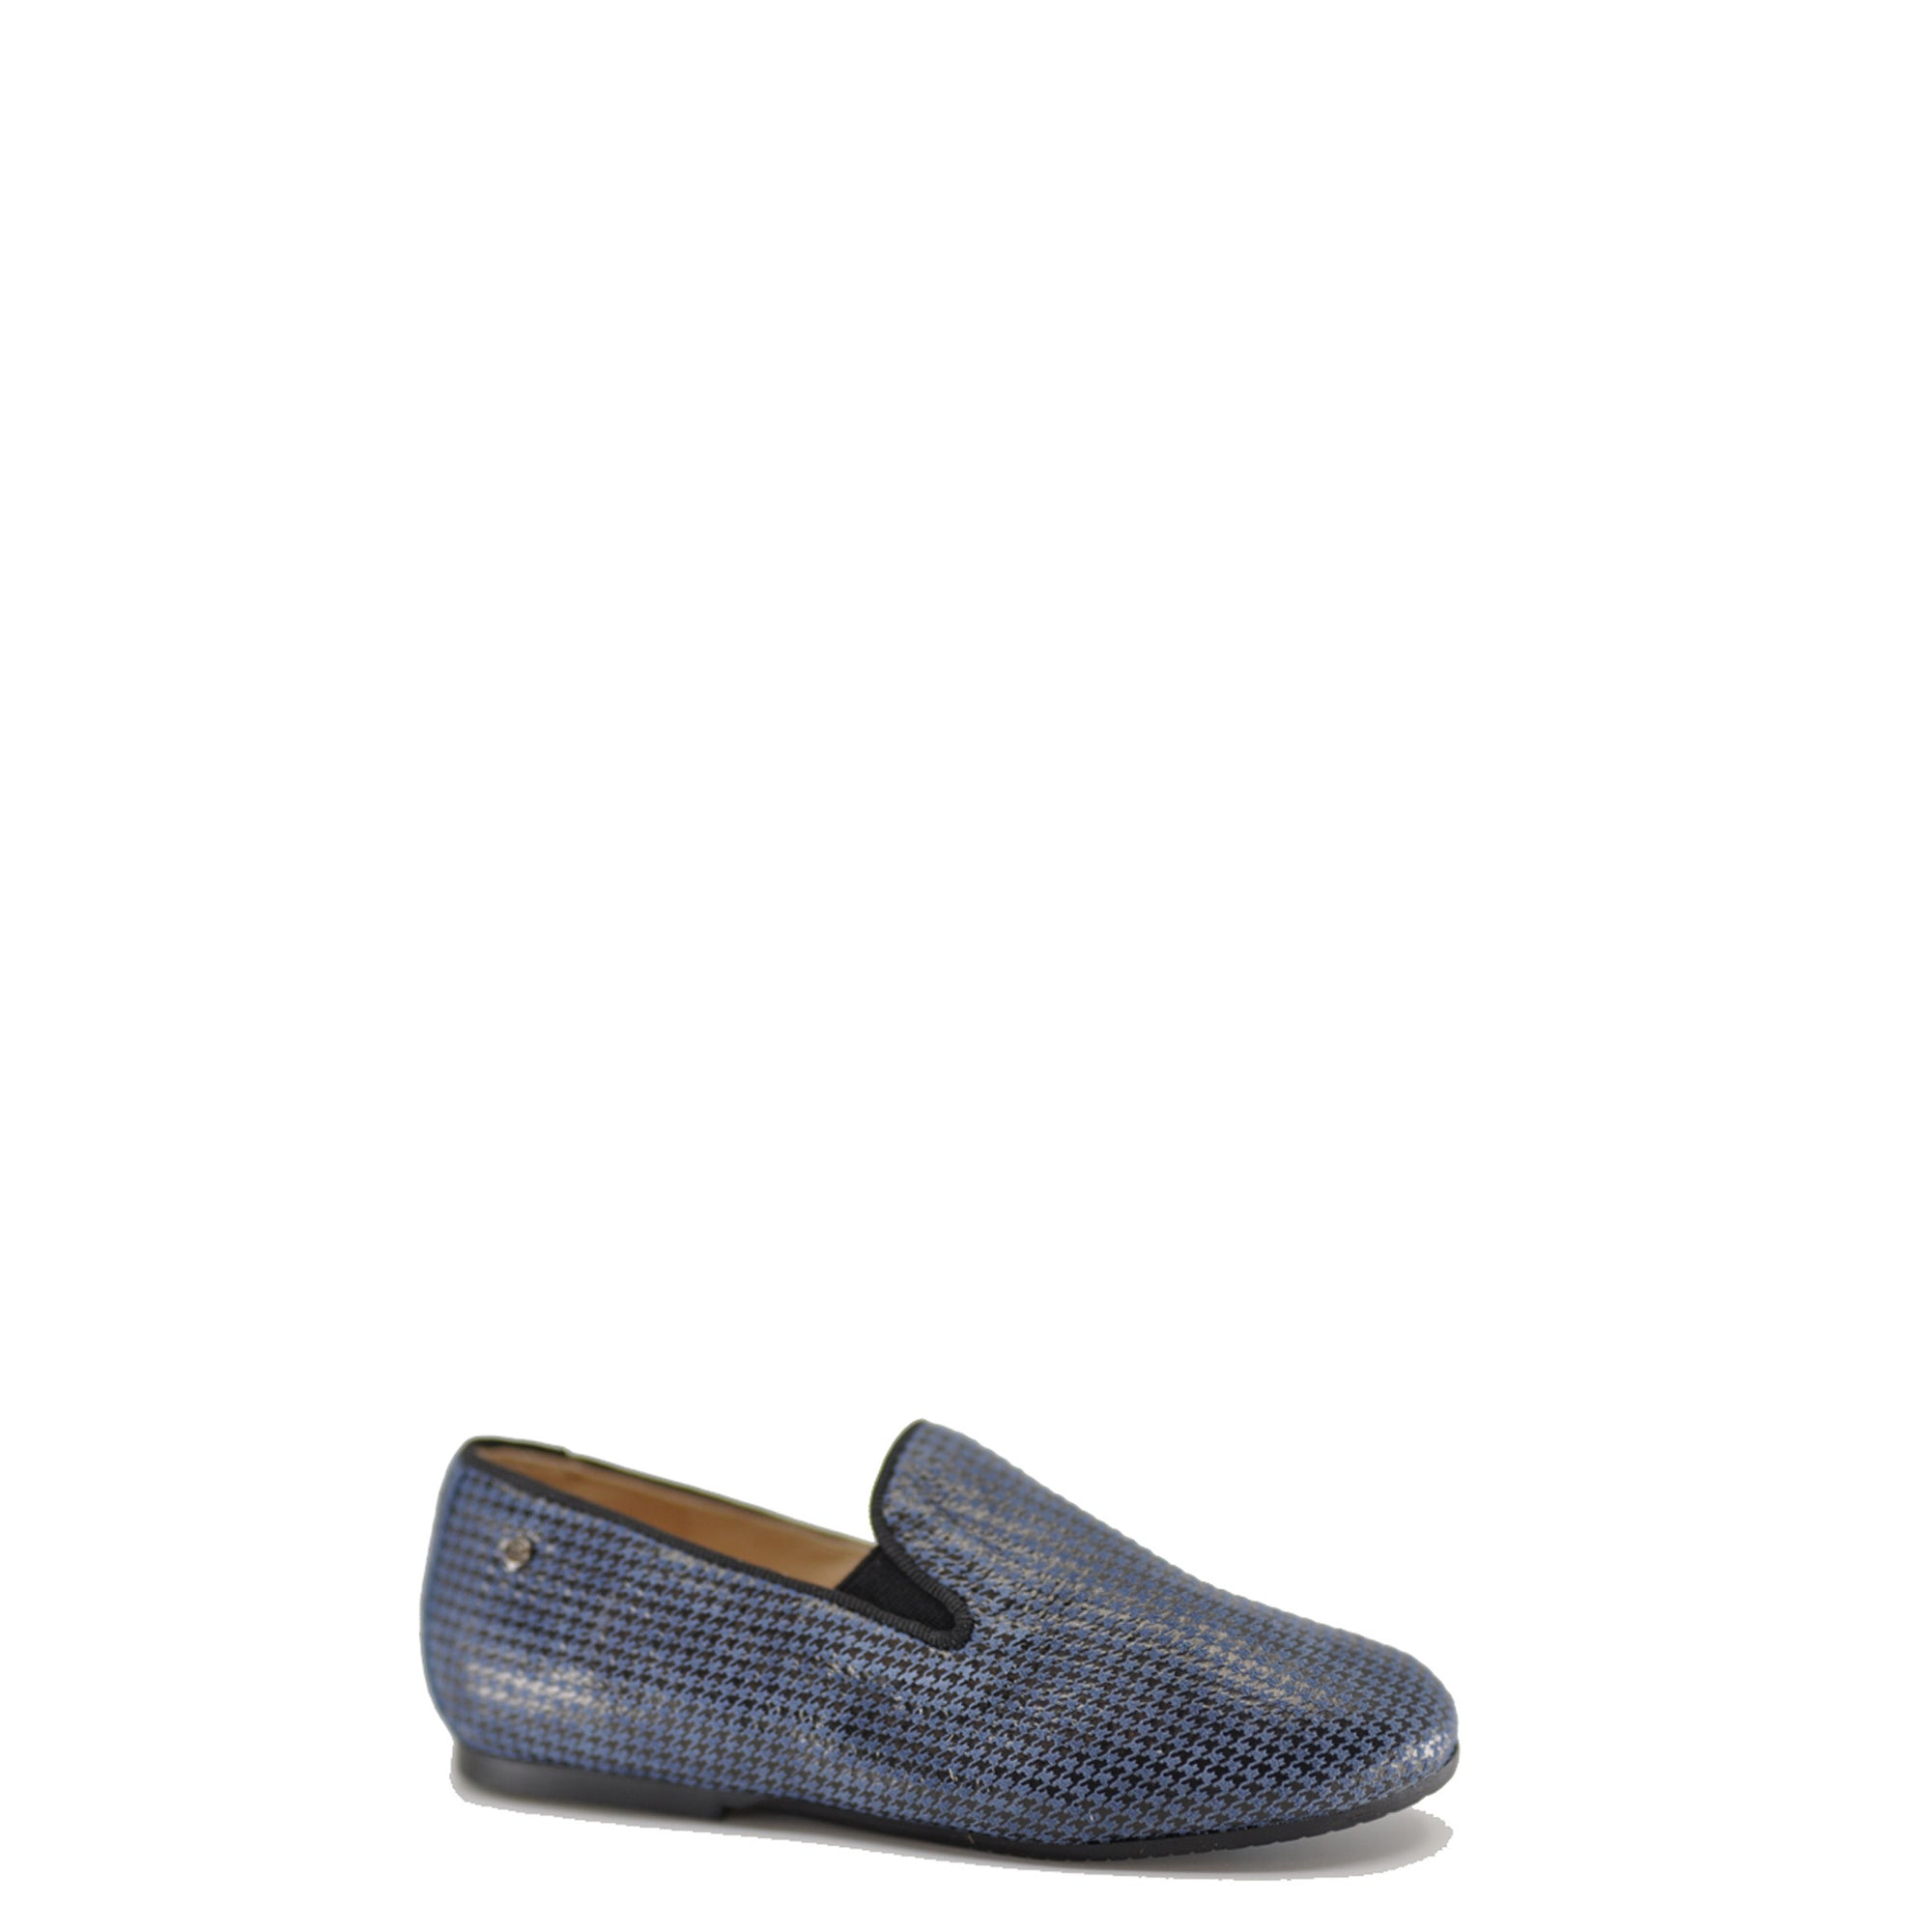 Manuela Blue Houndstooth Smoking Loafer-Tassel Children Shoes